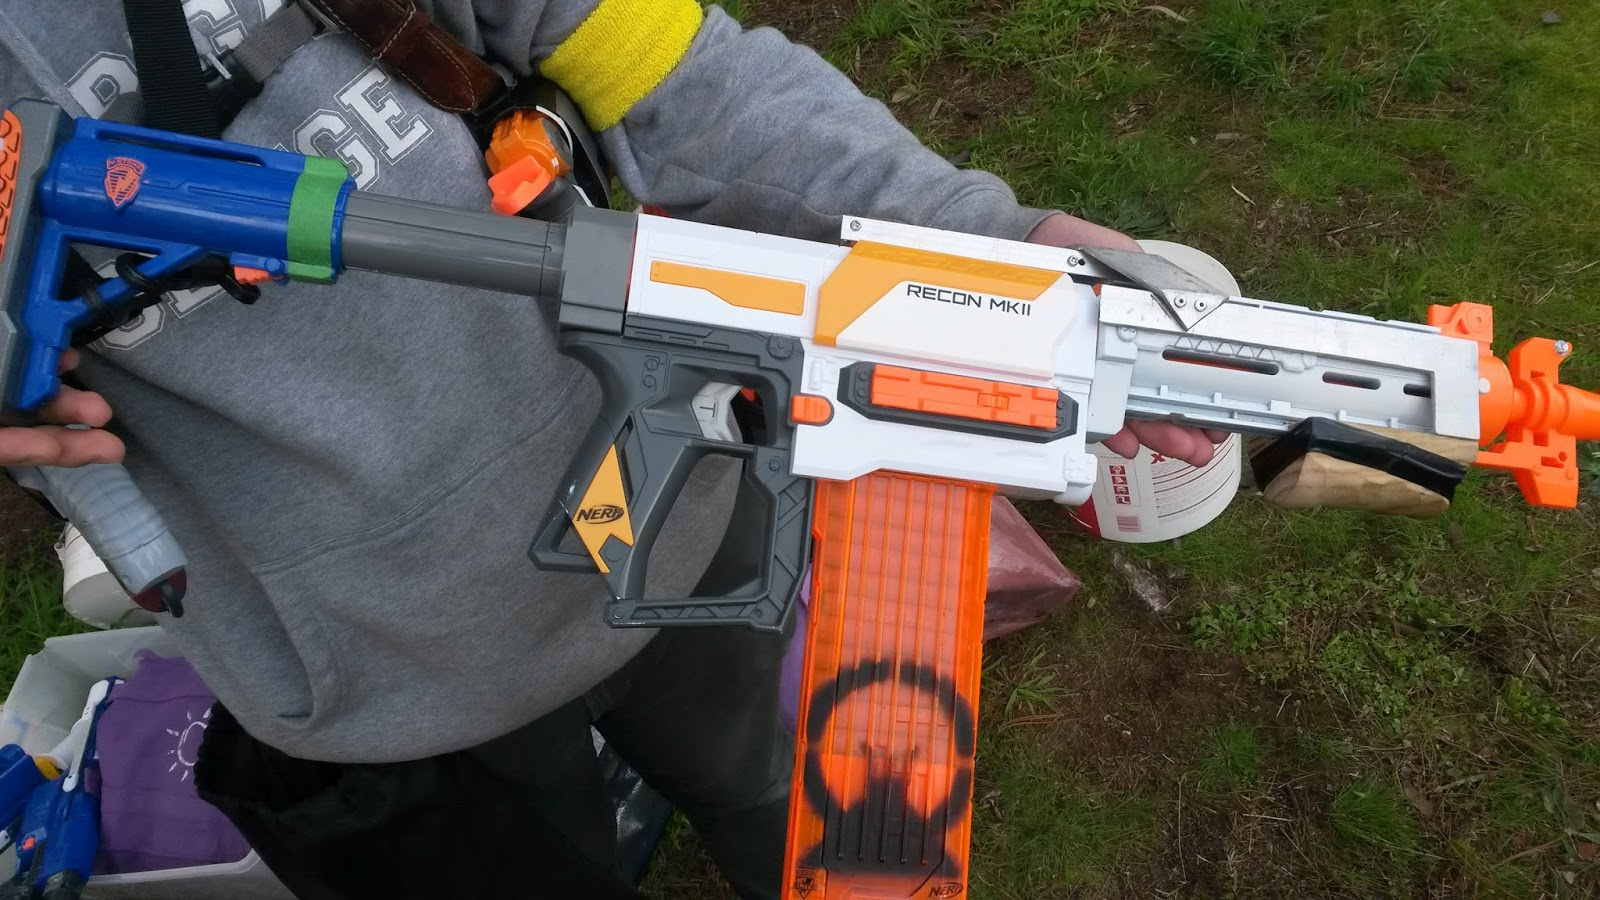 Outback Nerf Mlf Game Report 21 8 16 Rain Black Hawk Down